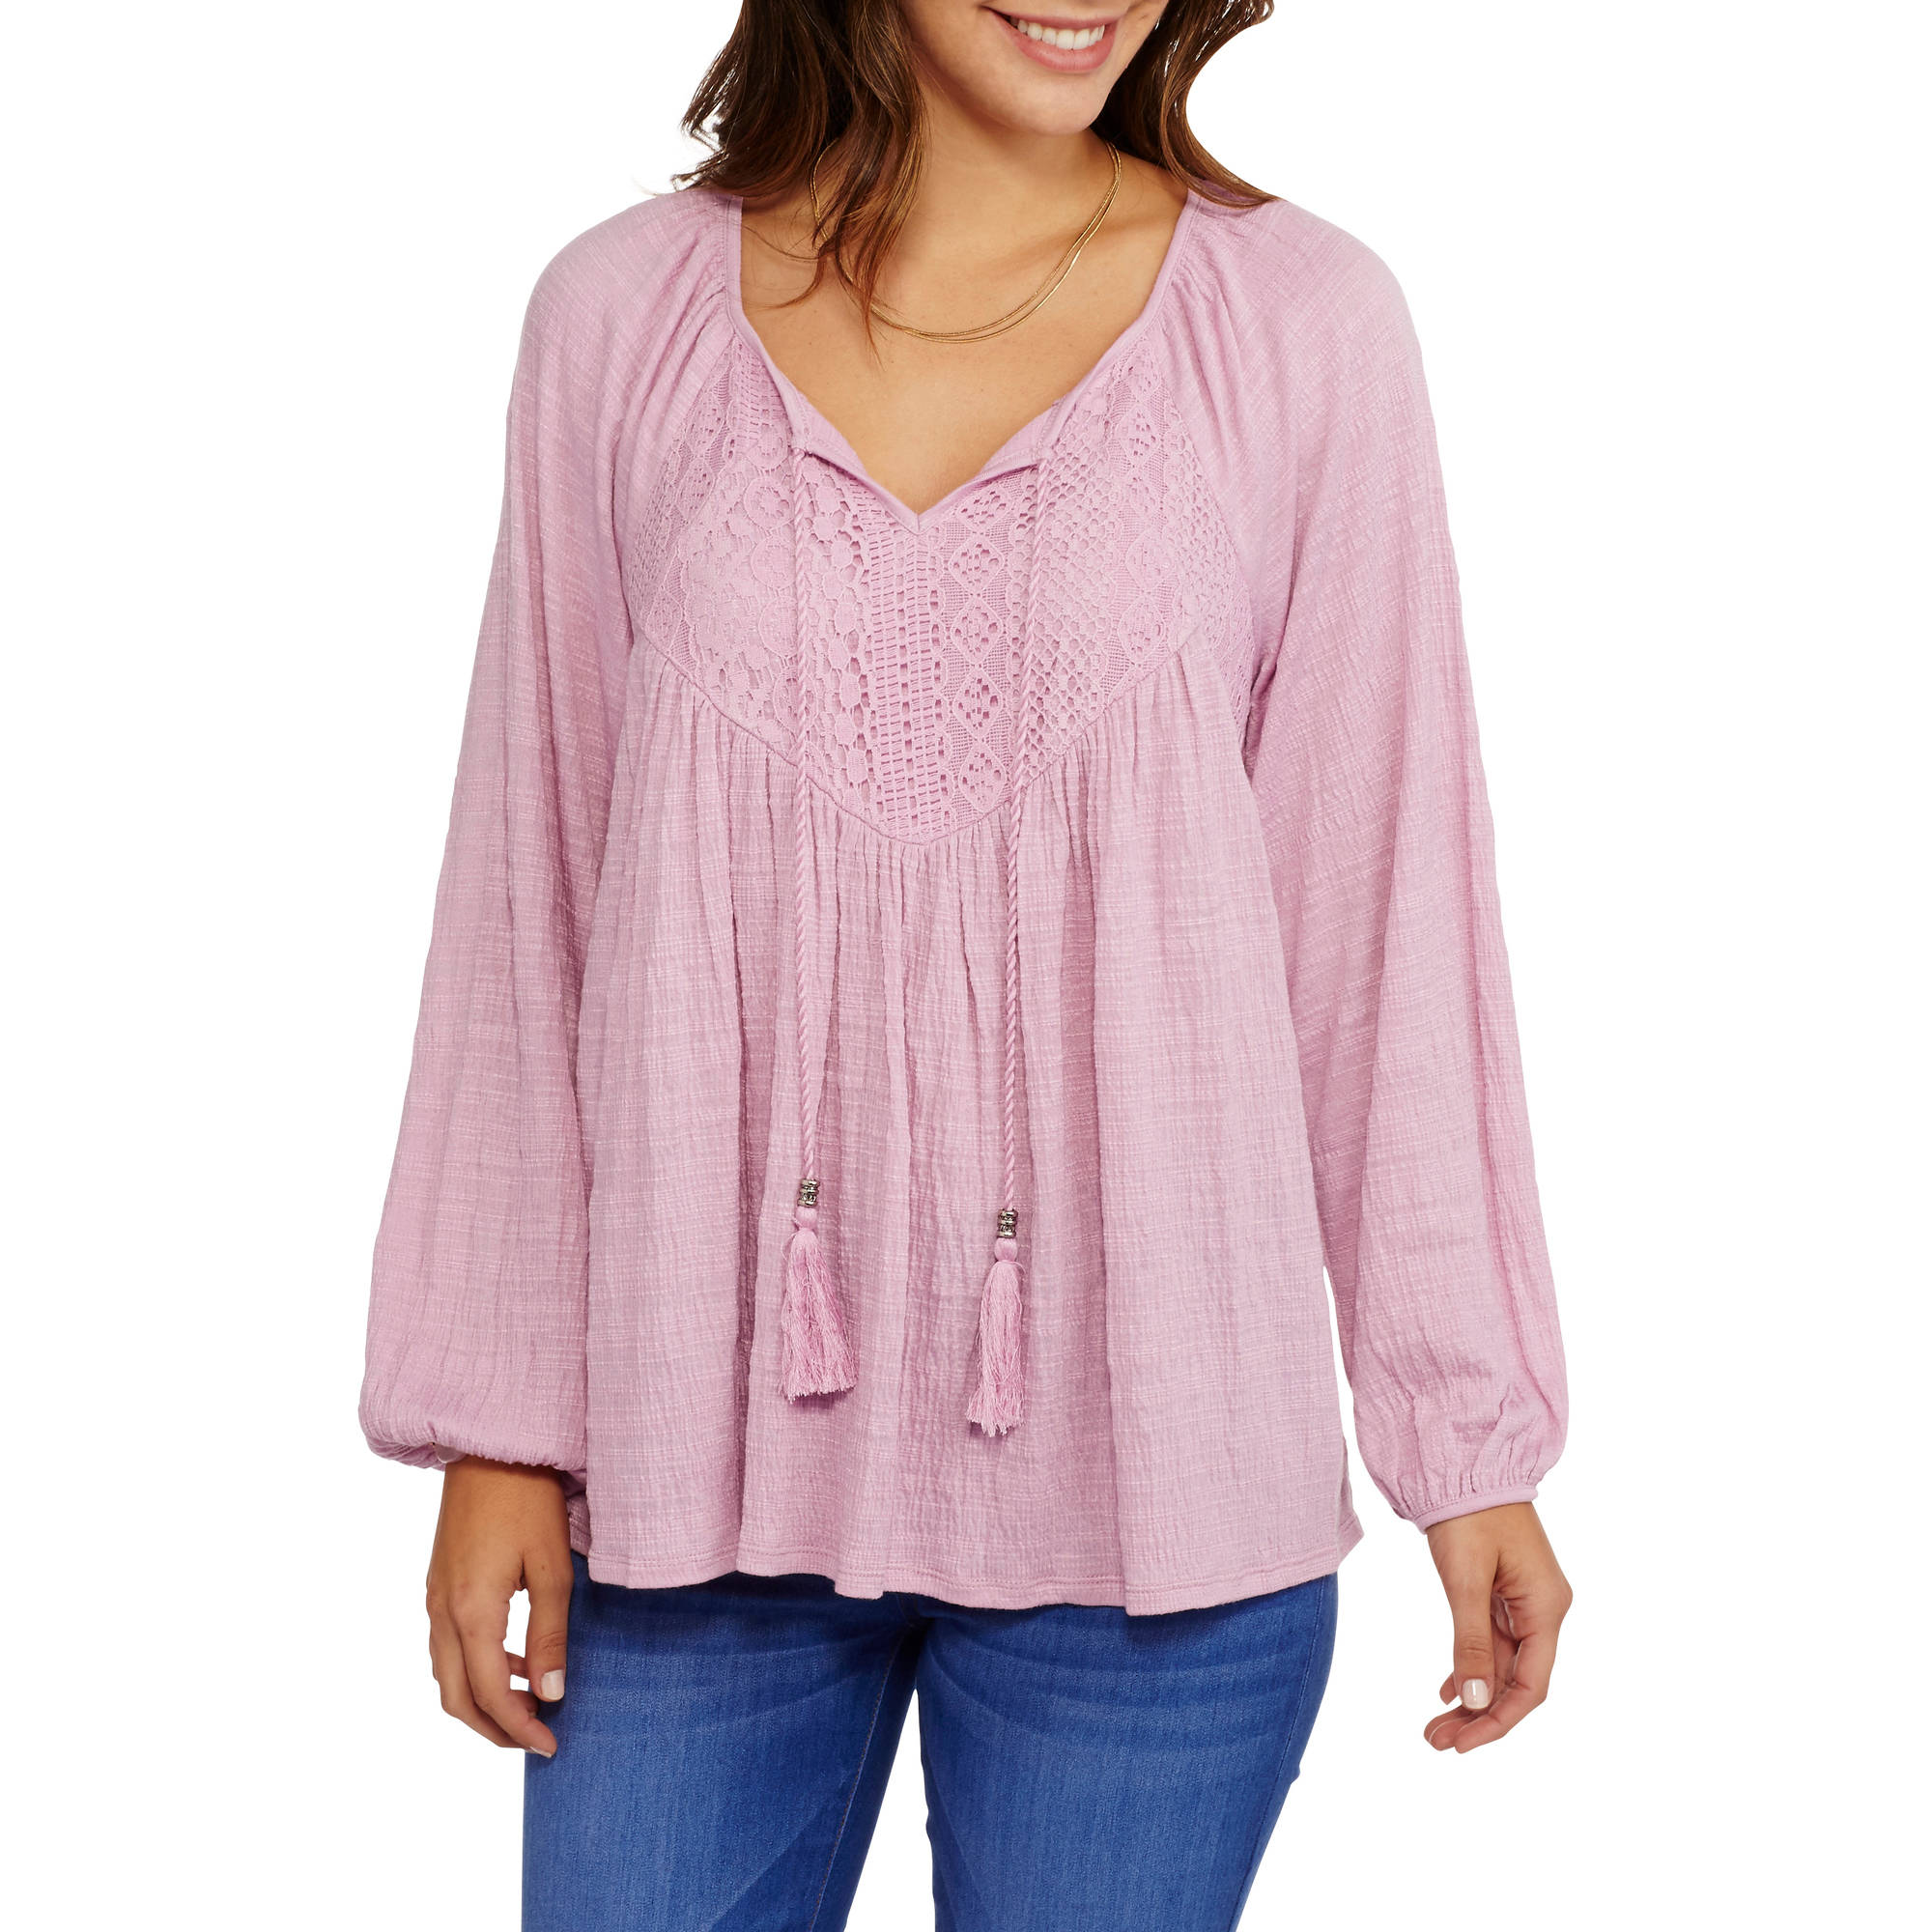 Faded Glory Women's Long Sleeve Peasant Top with Front Tassels and Feminine Lace Detail